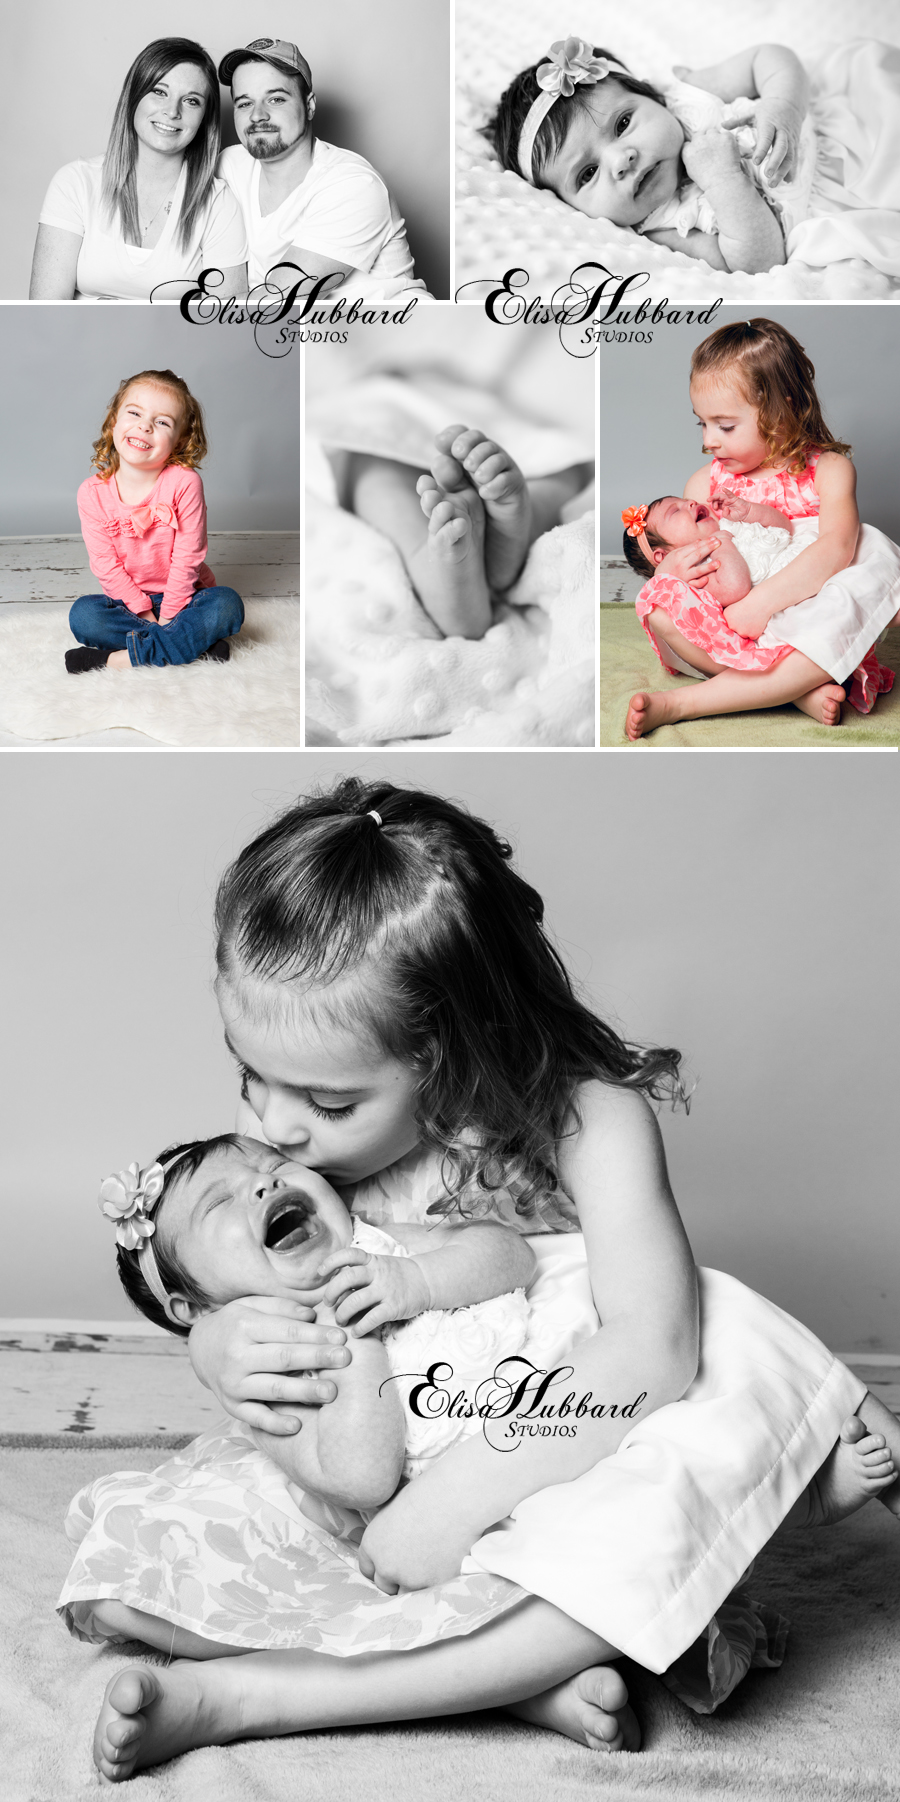 Elisa Hubbard Studios, Child Photography, Newborn Photography, Studio Photography, Family, Sisters, Portrait Photography